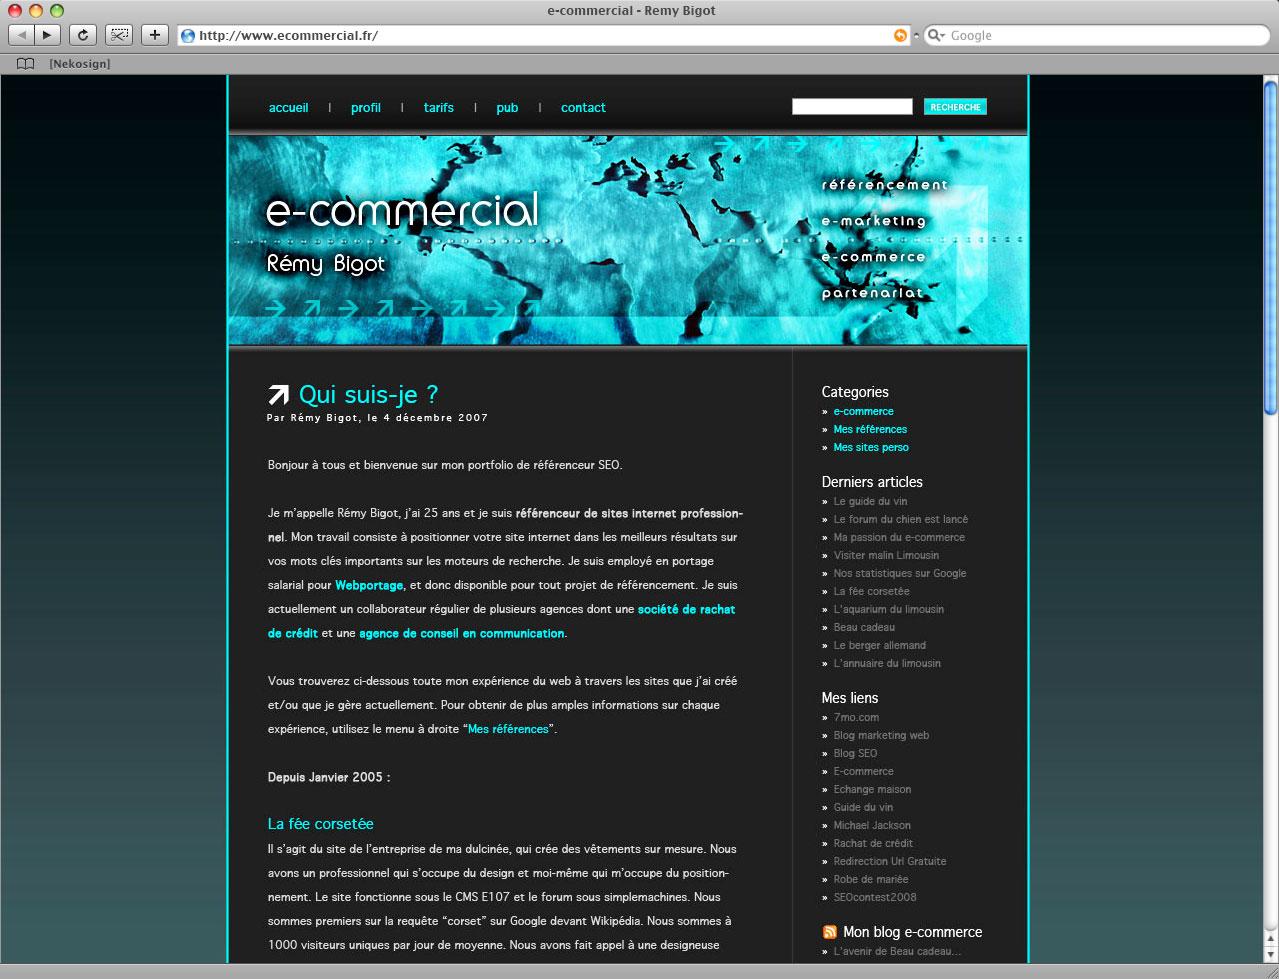 ecommercial website blog